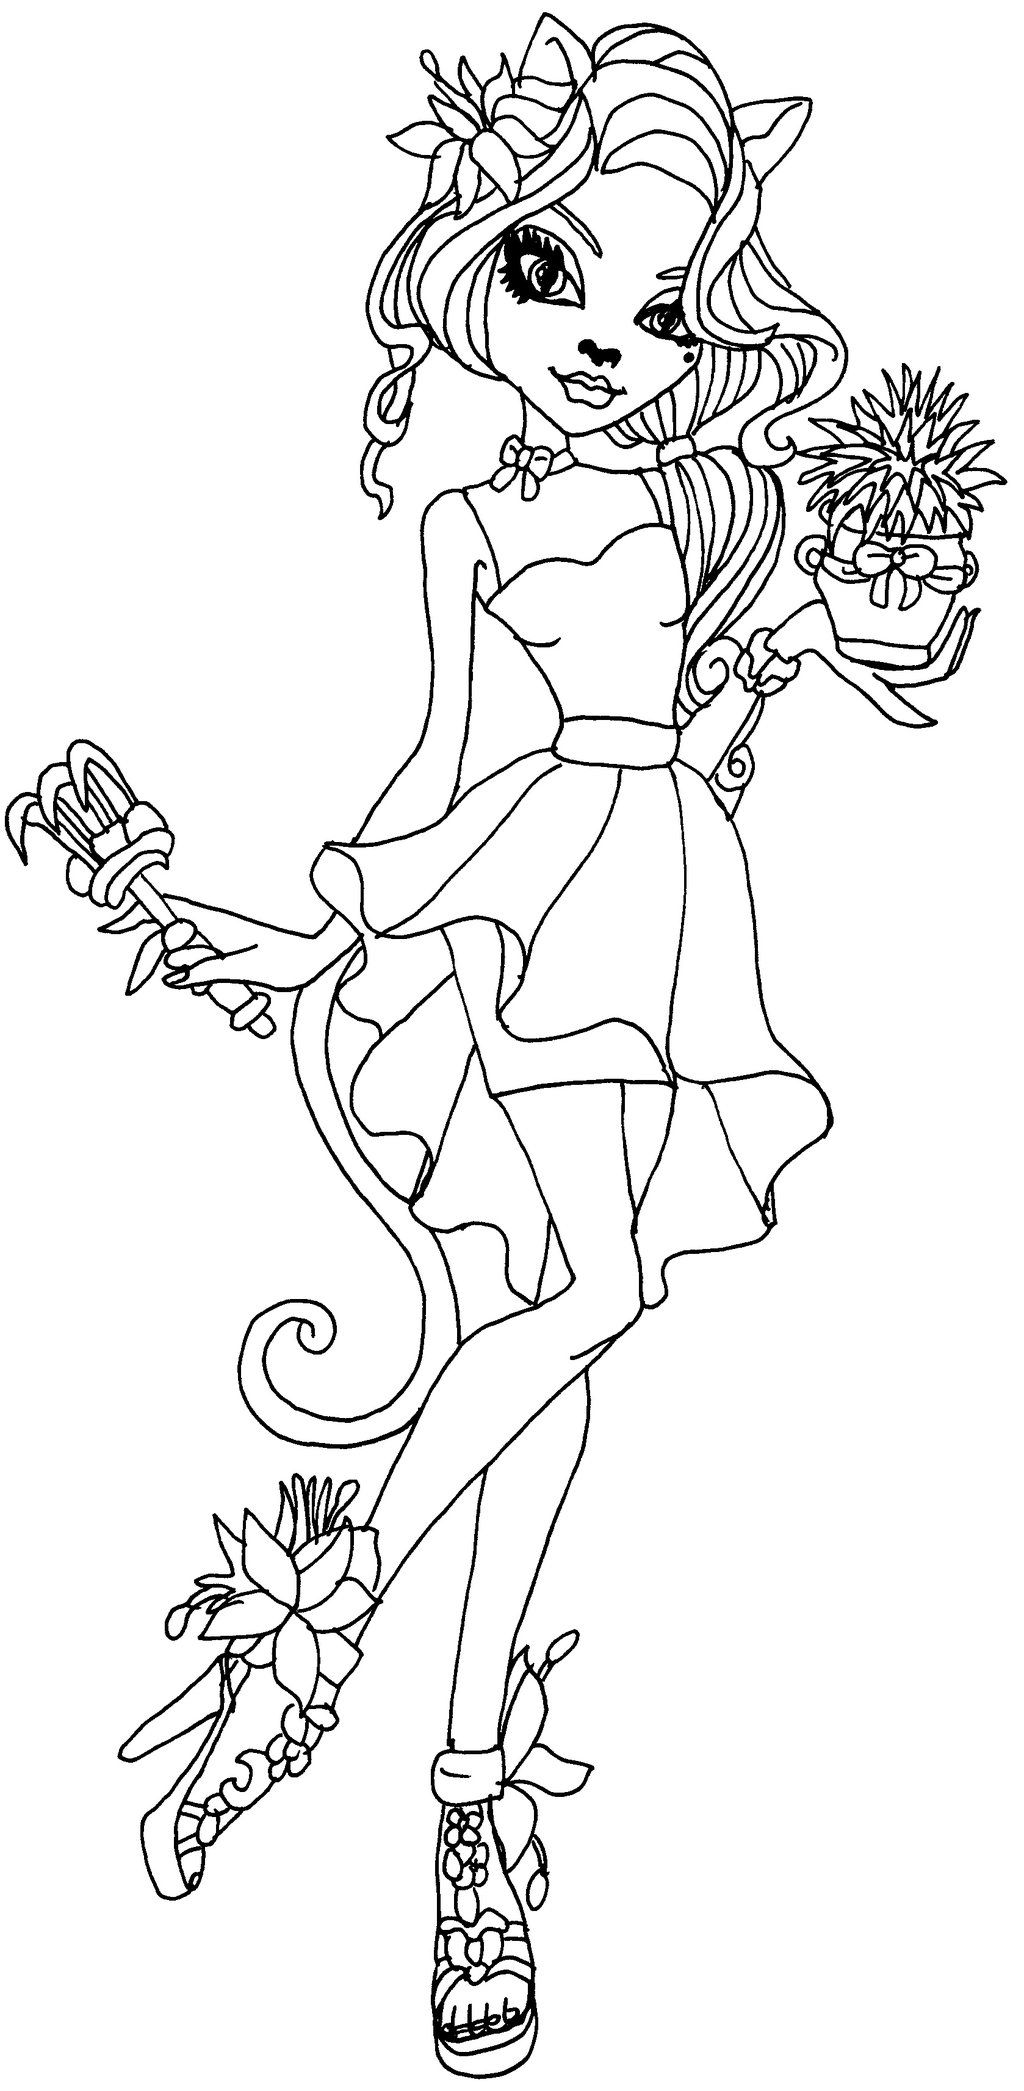 Monster High Coloring Pages Căutare Google Monster High Para Colorear Dibujos Tumblr Para Colorear Dibujos A Lapiz Tumblr